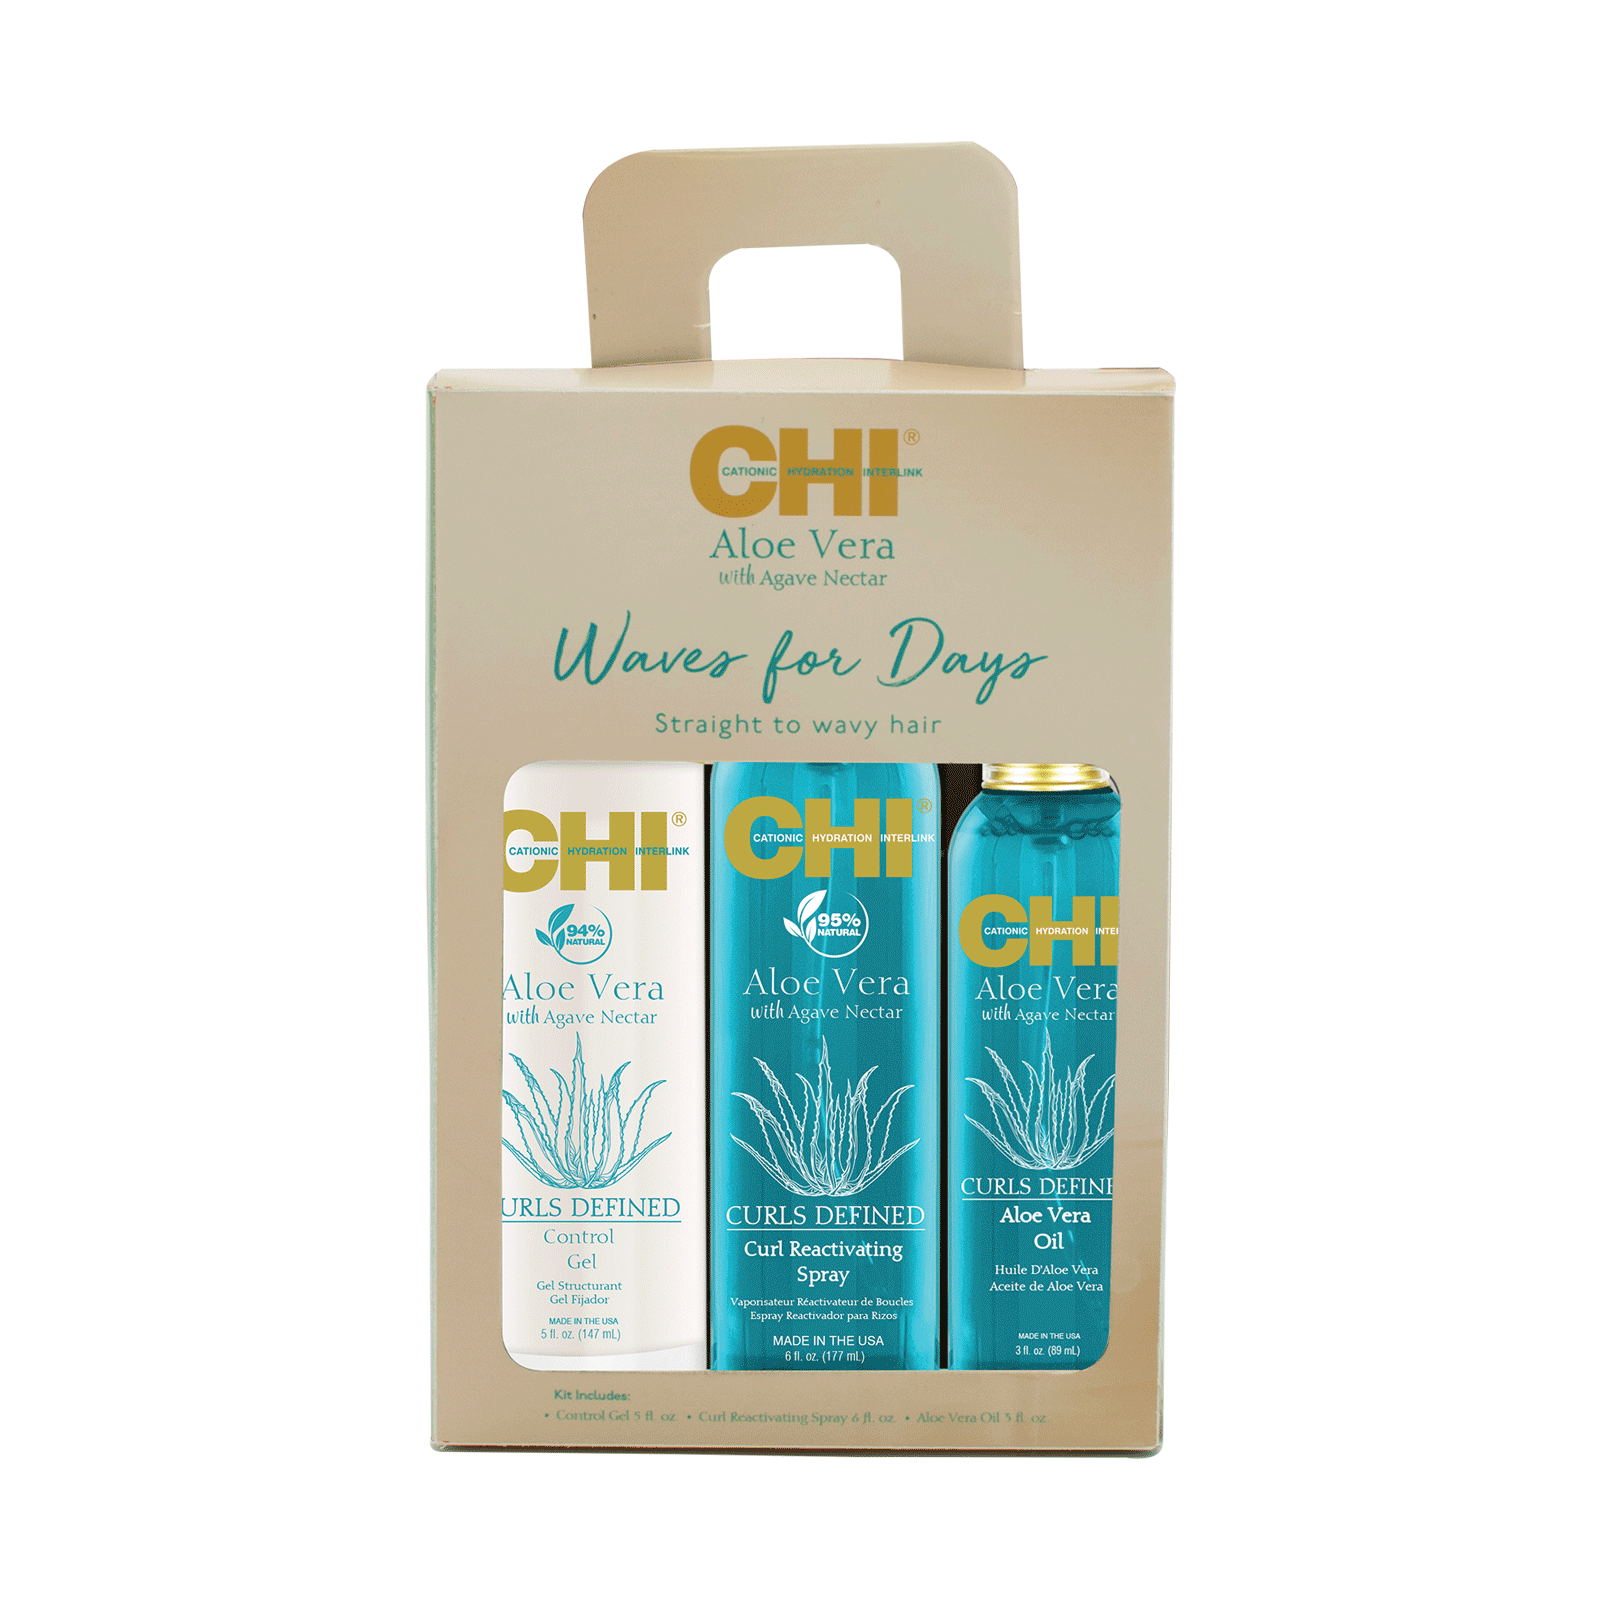 CHI Aloe Vera Agave Oil, Reactivate Spray, Control Gel